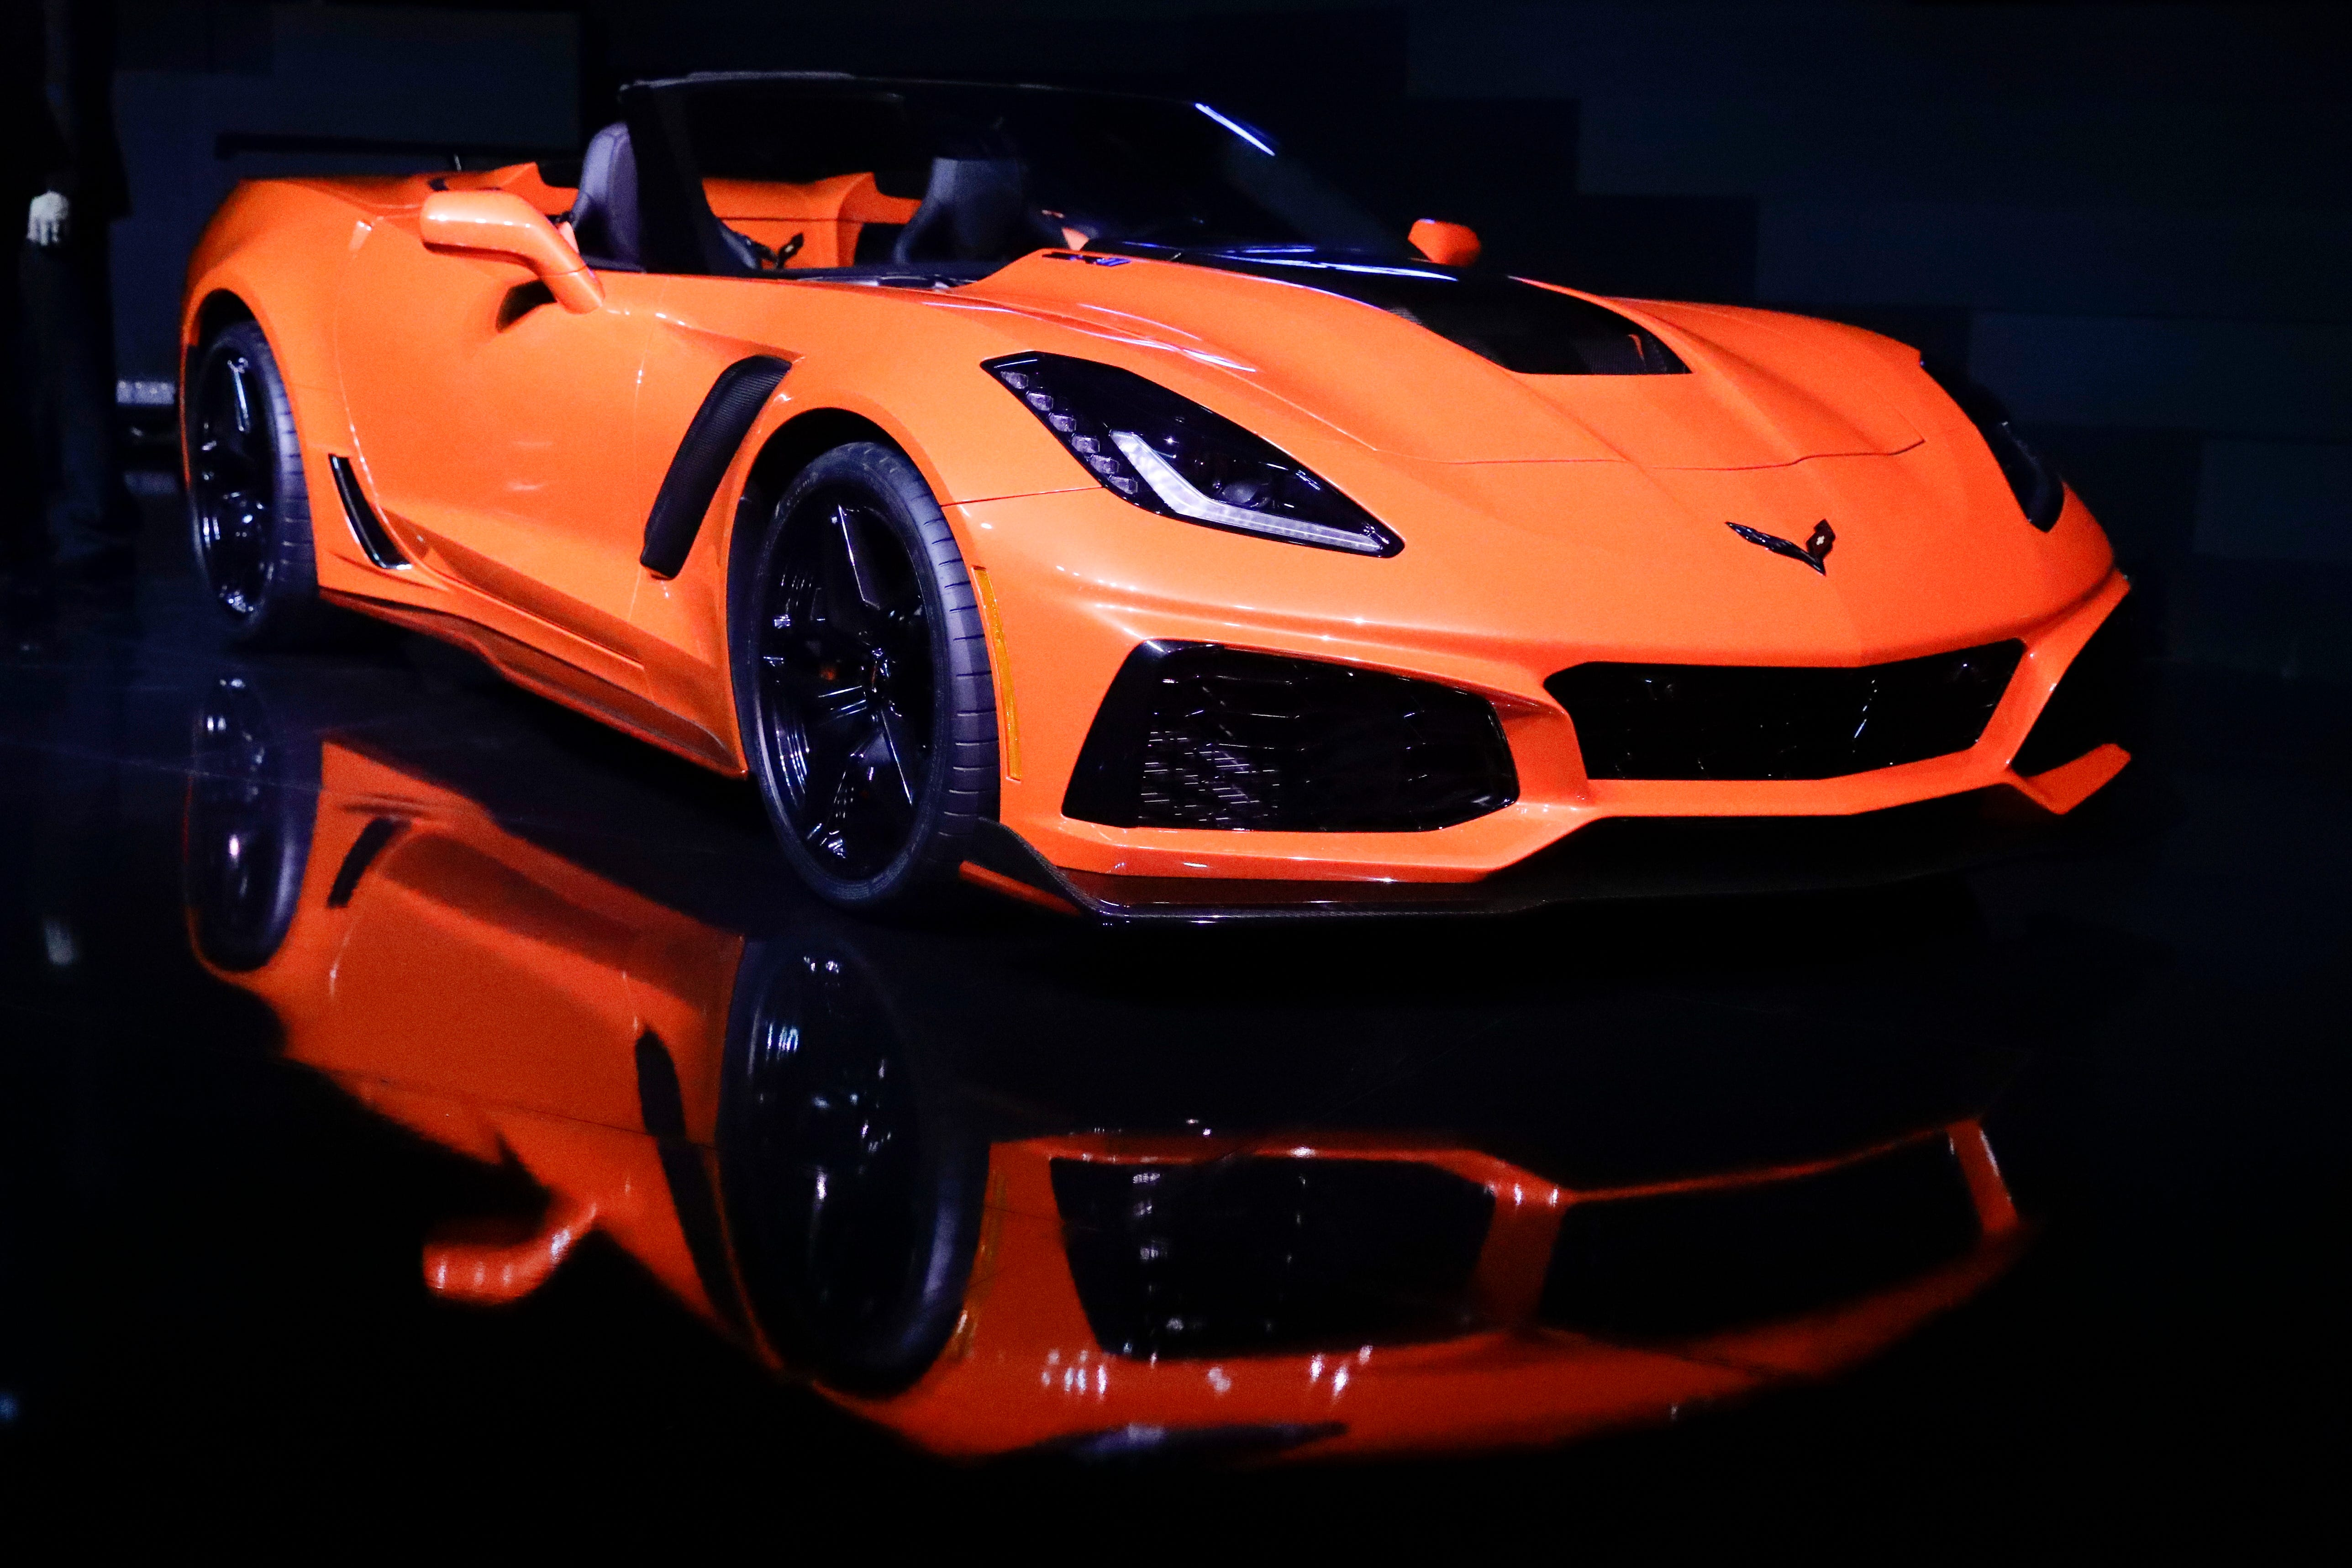 The 2019 Chevrolet Corvette ZR1 convertible is revealed